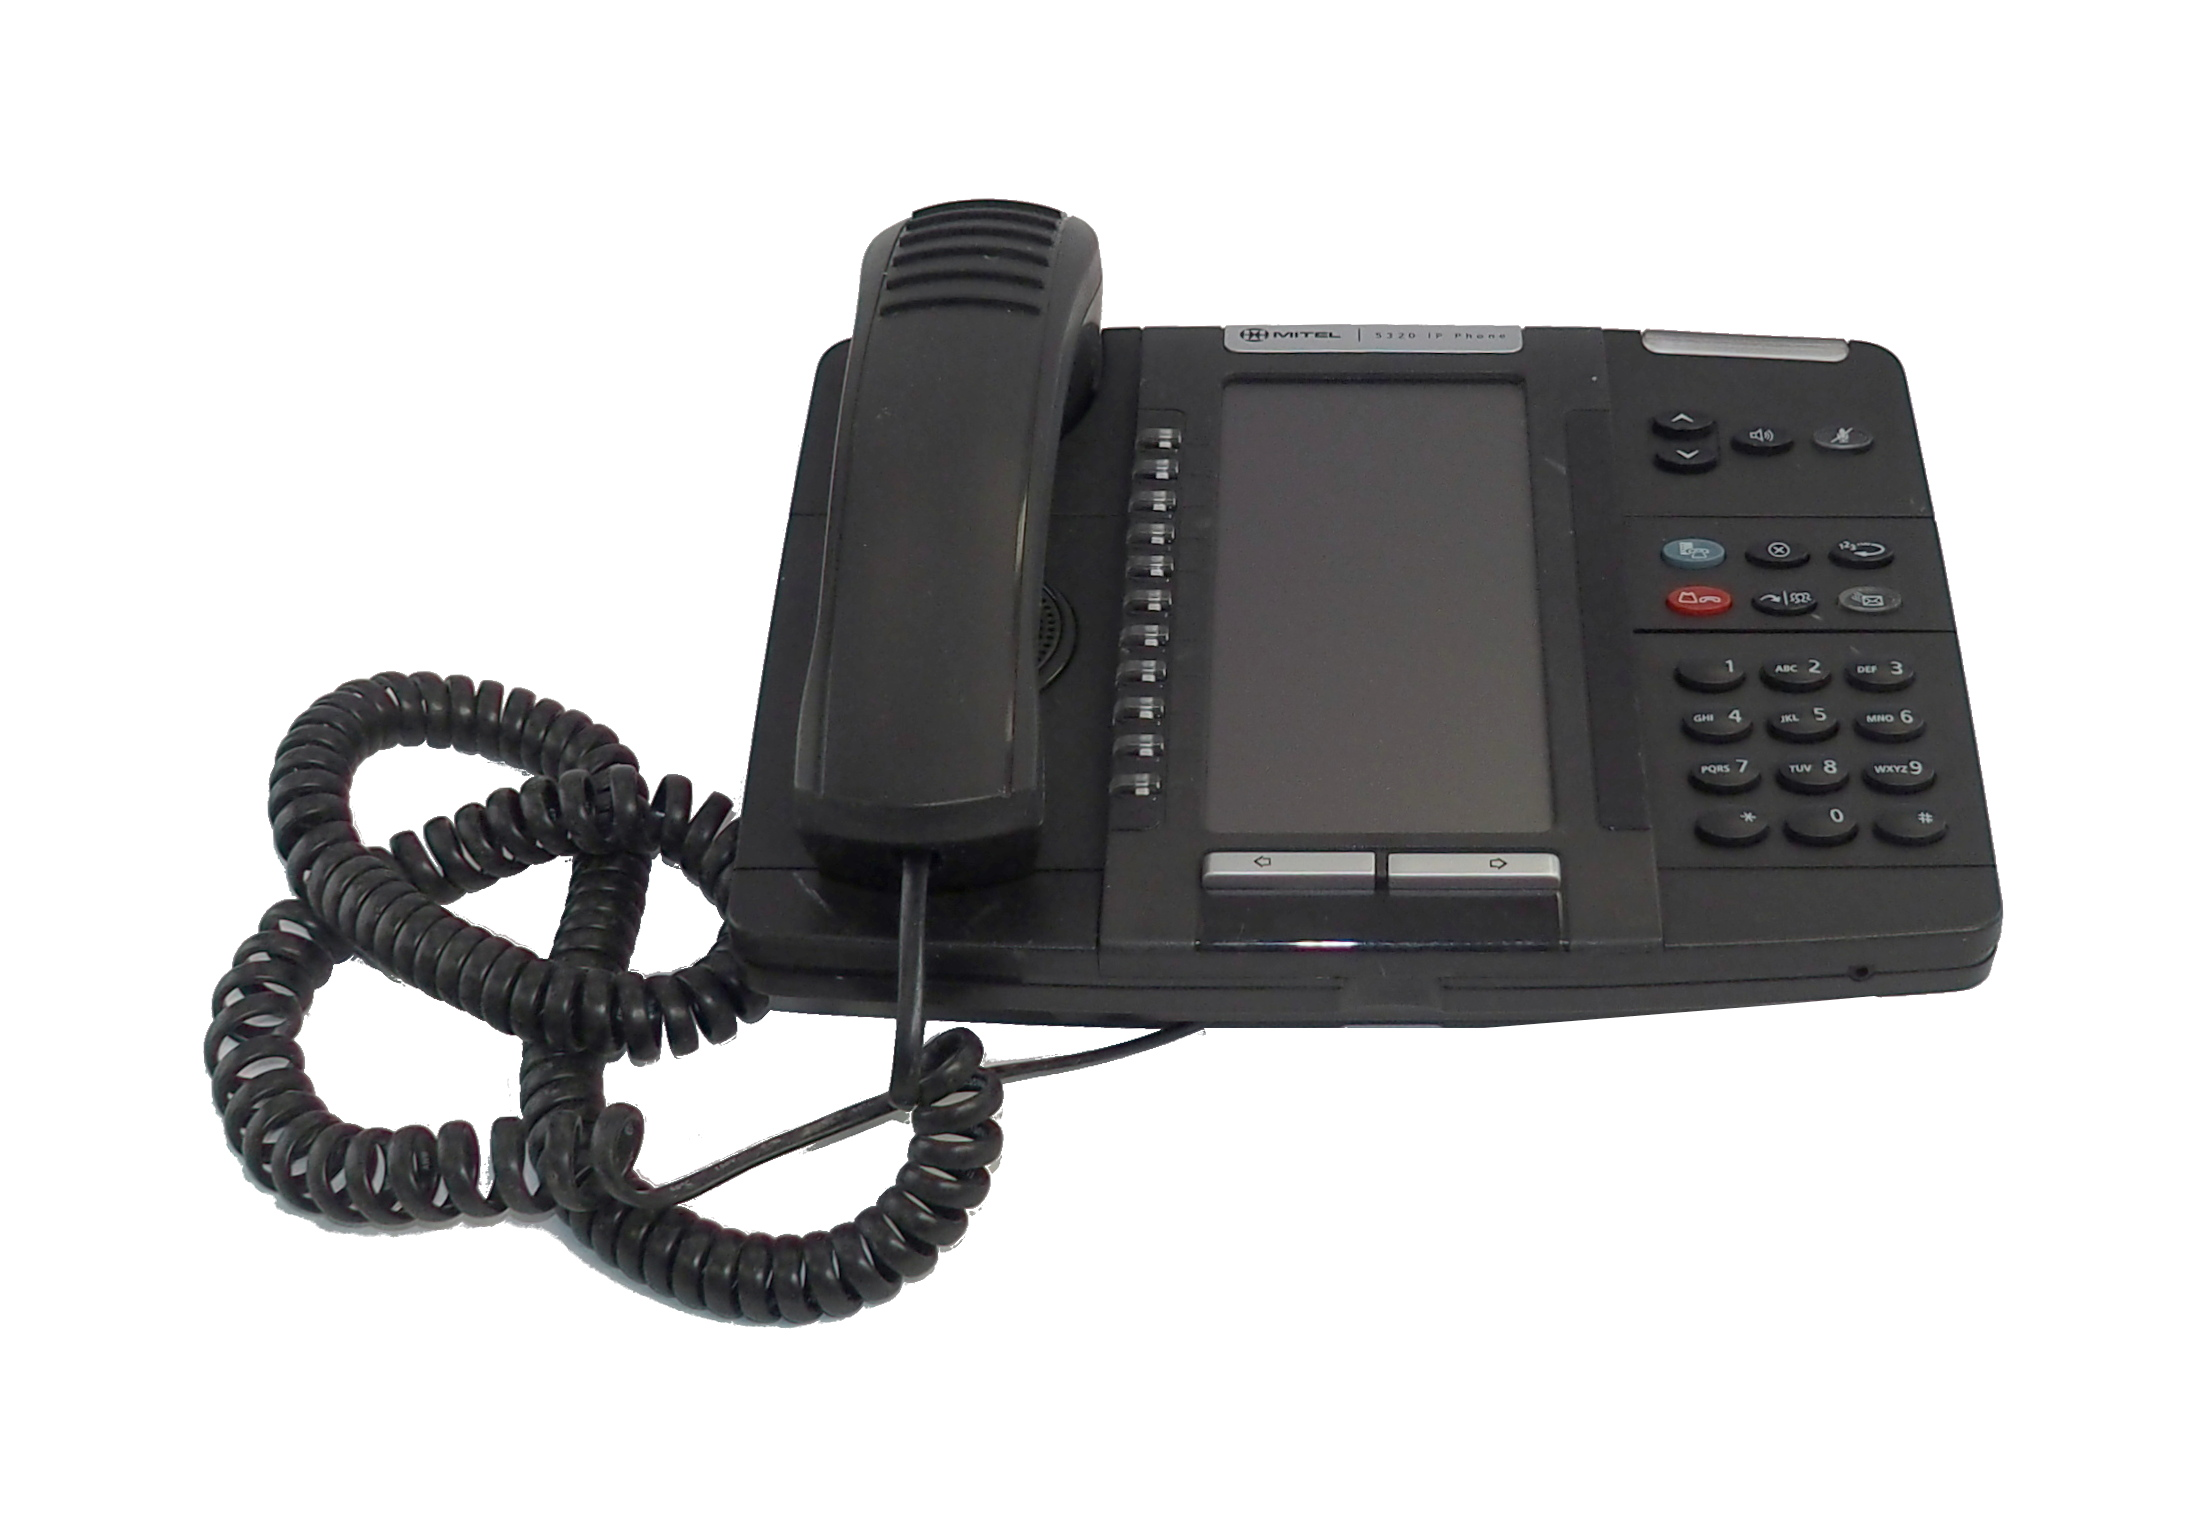 Mitel 50006191 5320 PoE IP Phone- Black - 56009501A